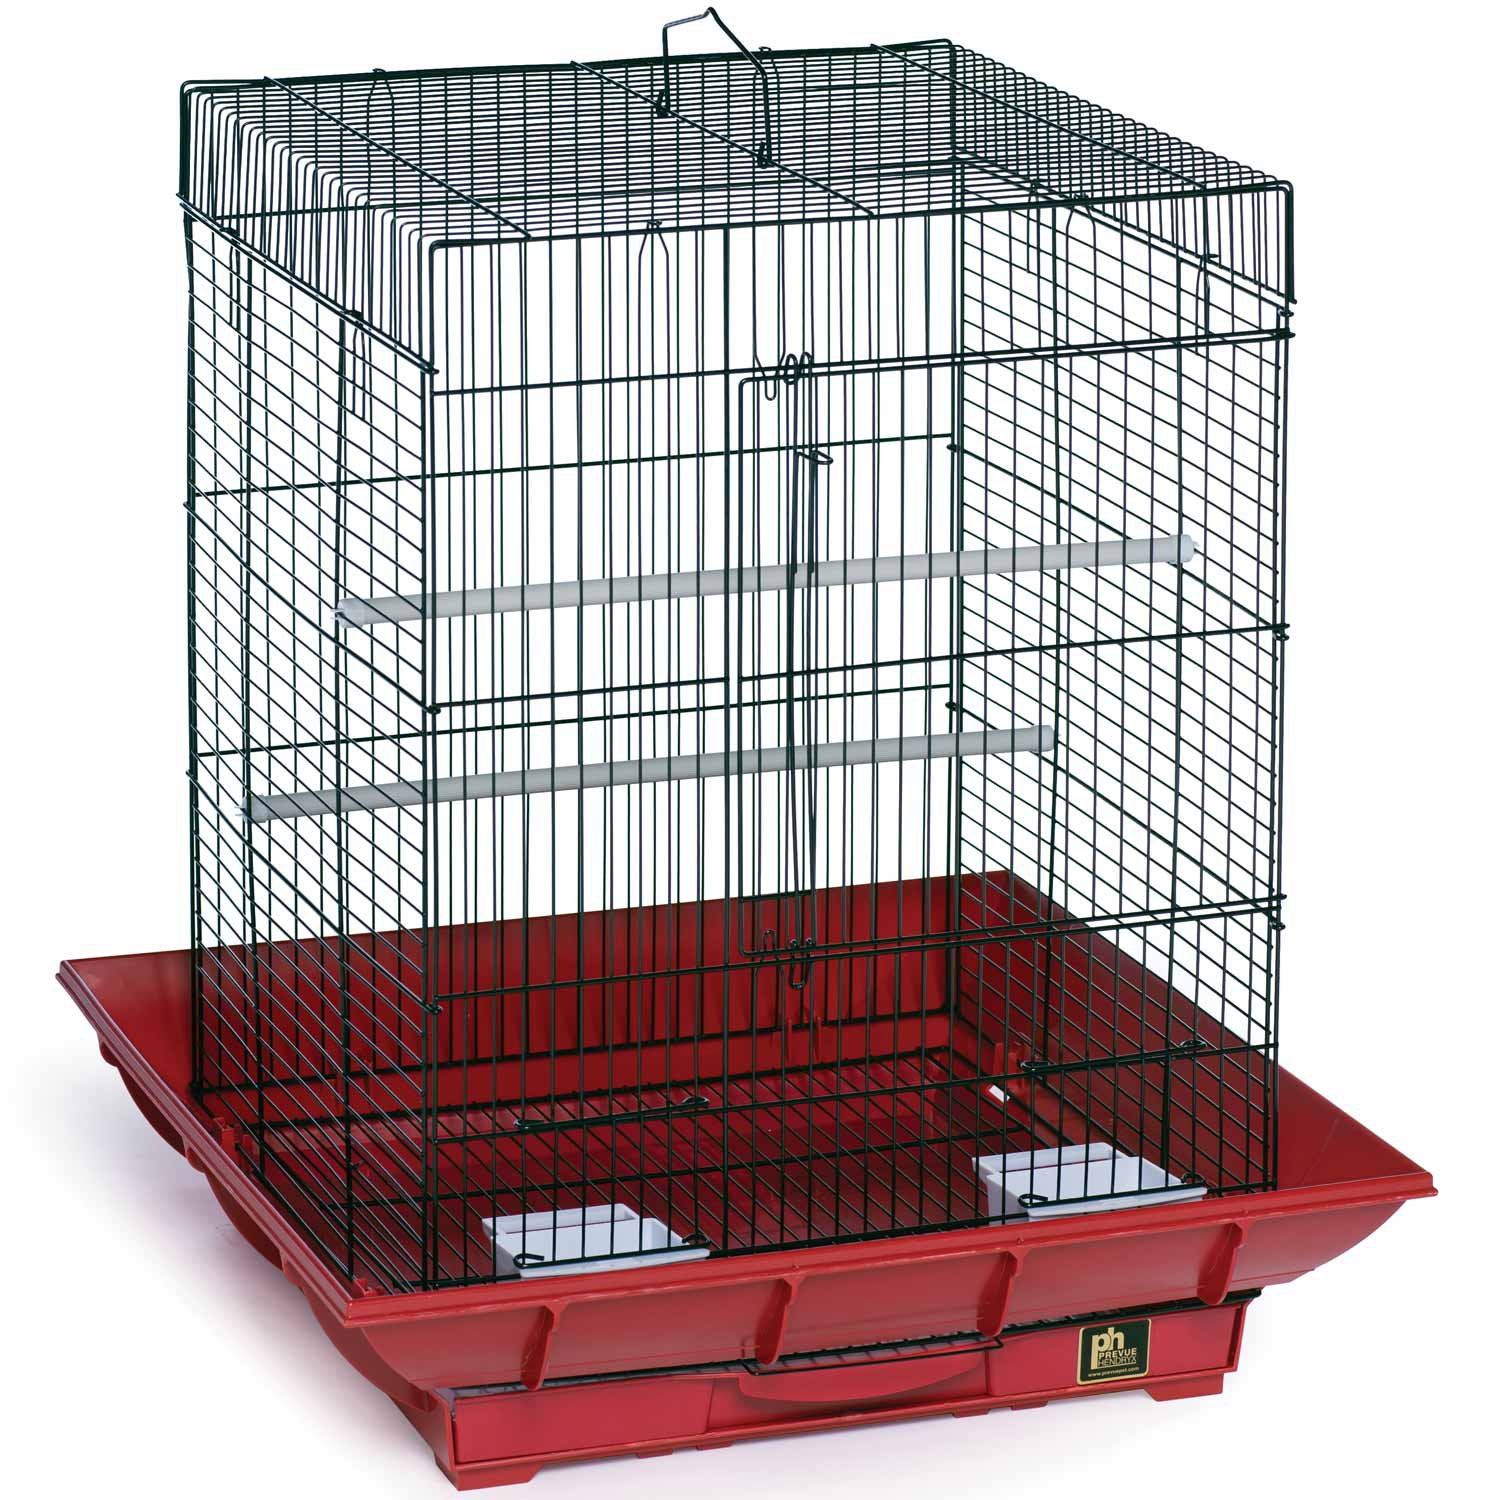 bird cages: parrot & parakeet & ecodecorative bird cages. Give your feathered friends plenty of room to spread their wings in a spacious new small bird or parrot cage from Petco.